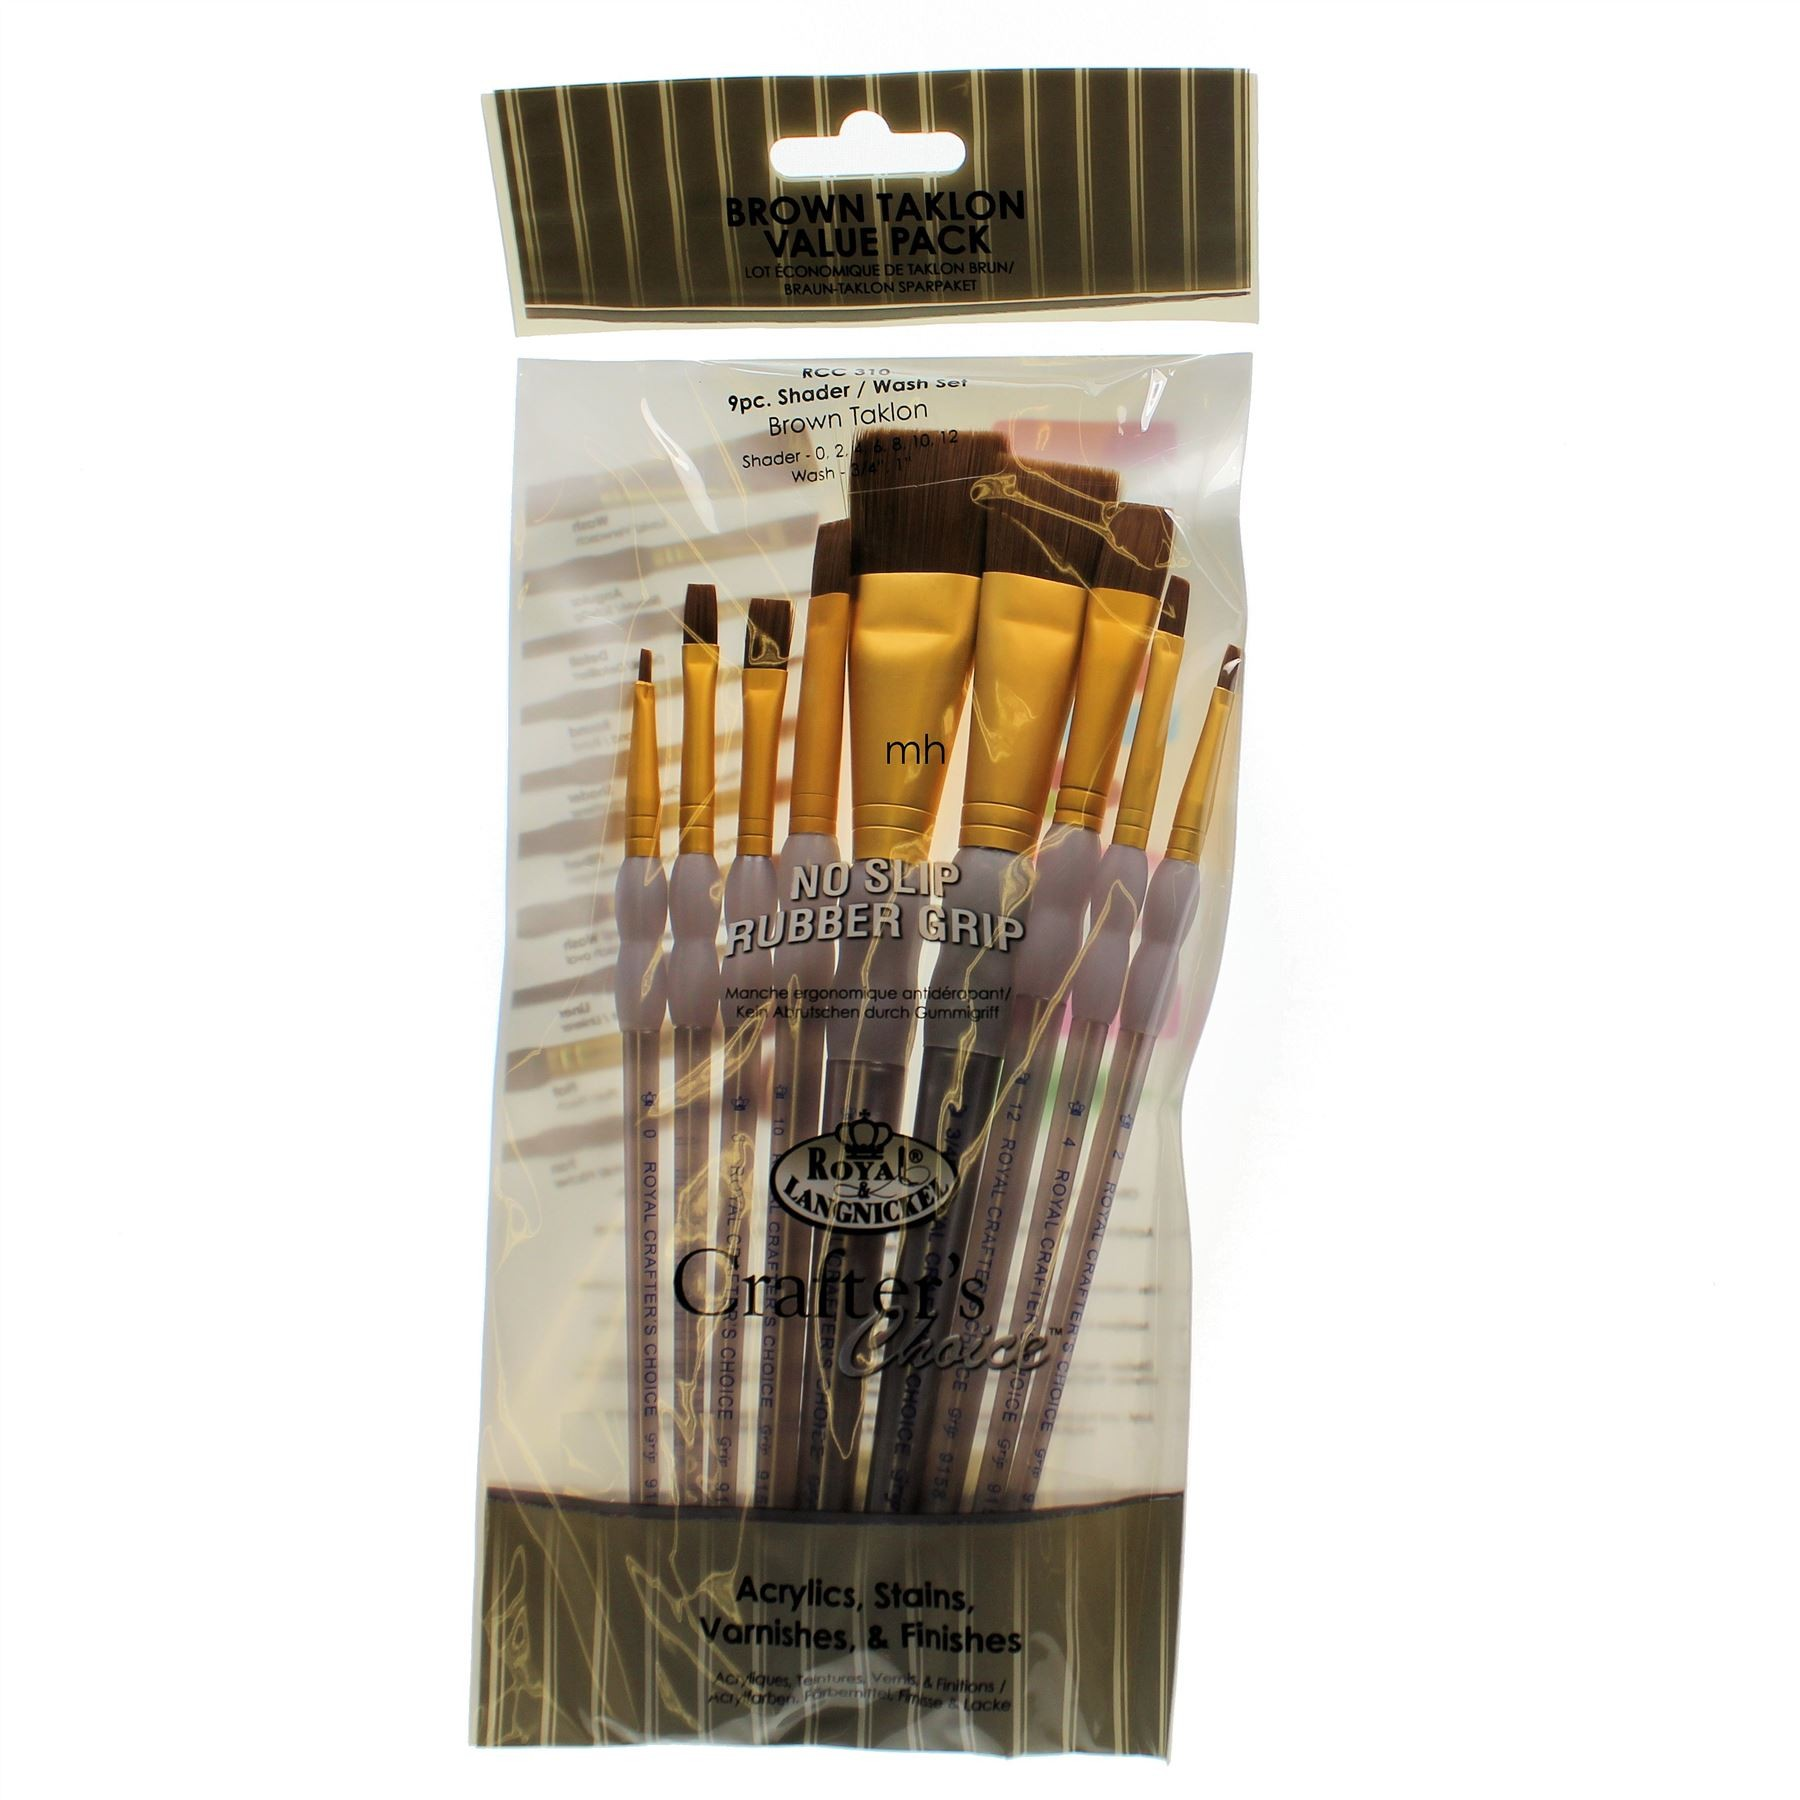 RCC-310 royal brush brown taklon brush set